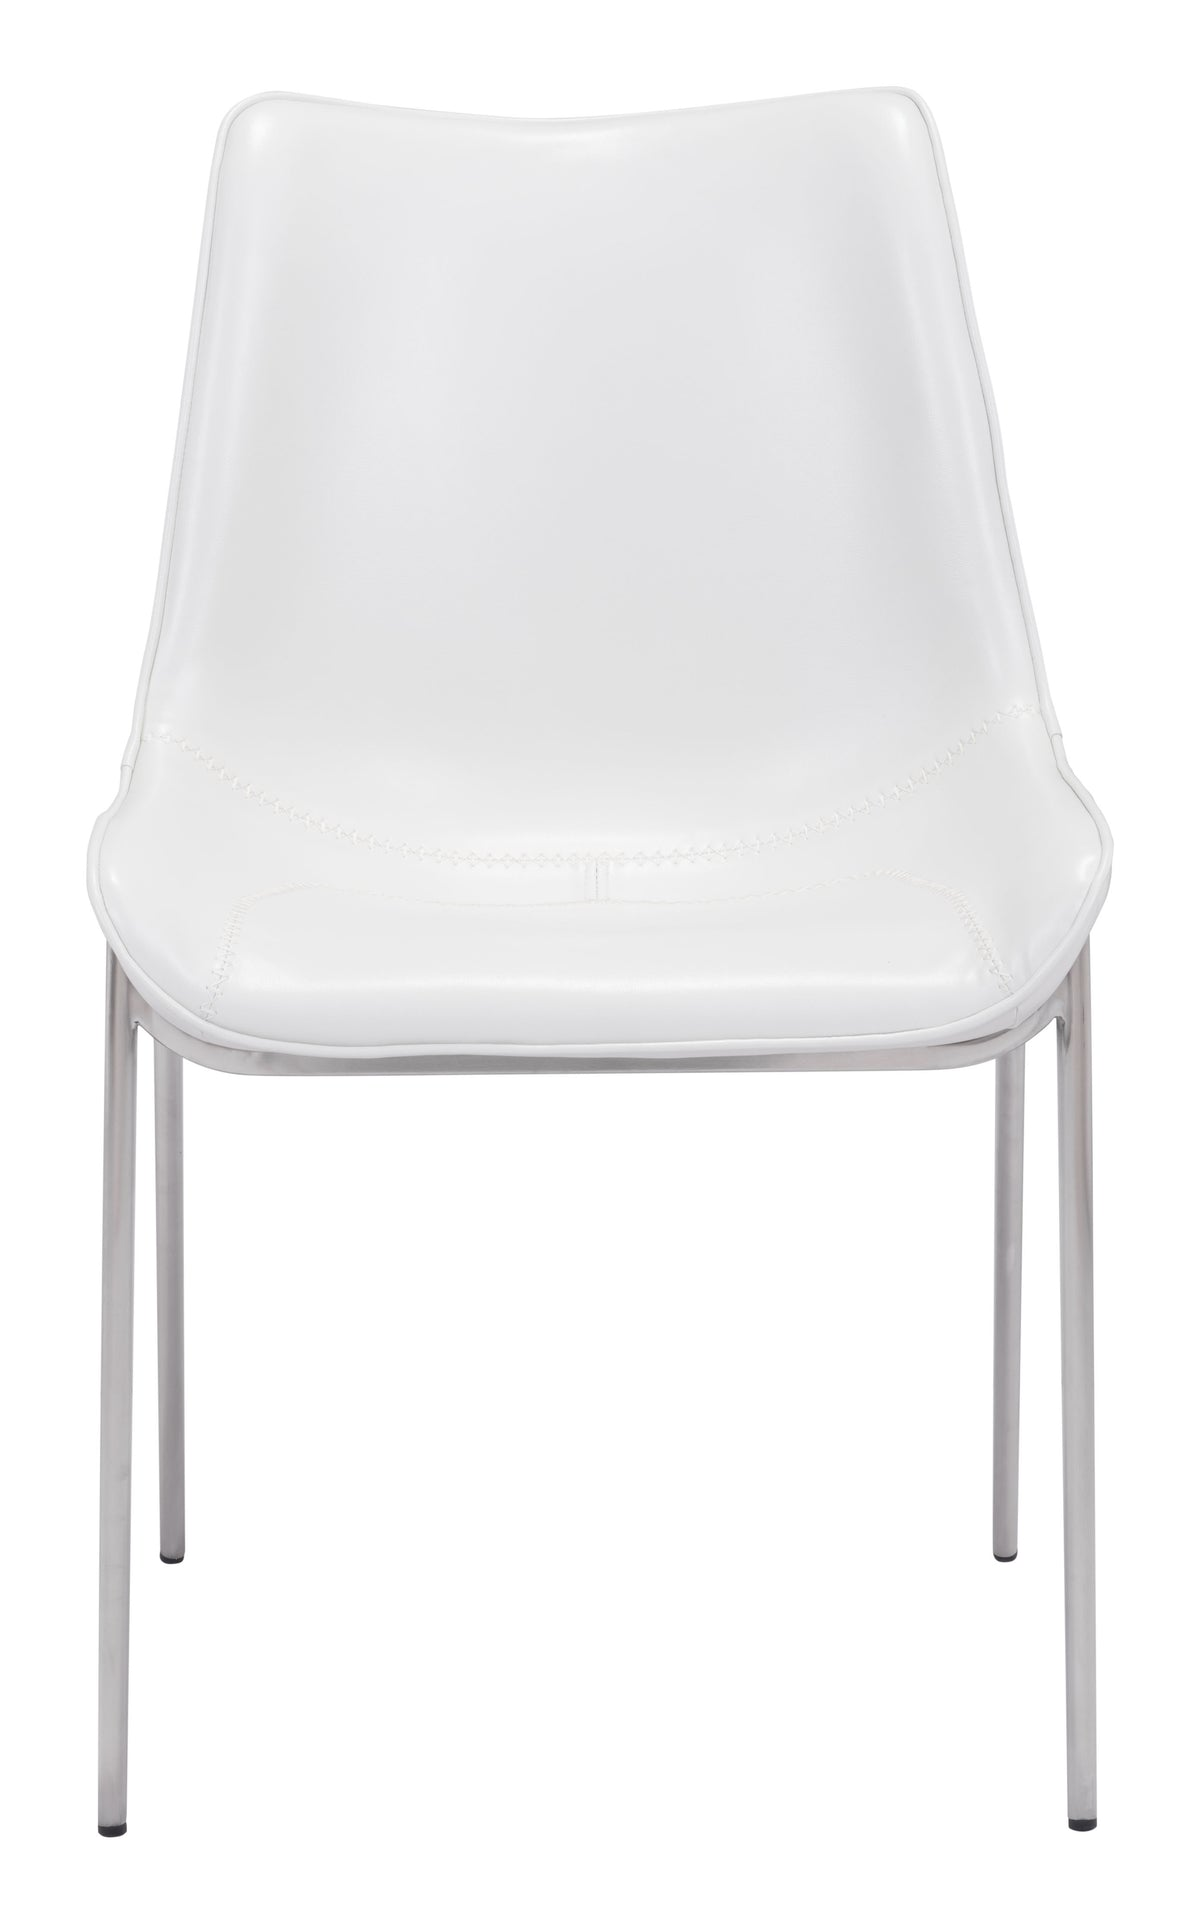 Bori Dining Chair White & Steel - Set of 2